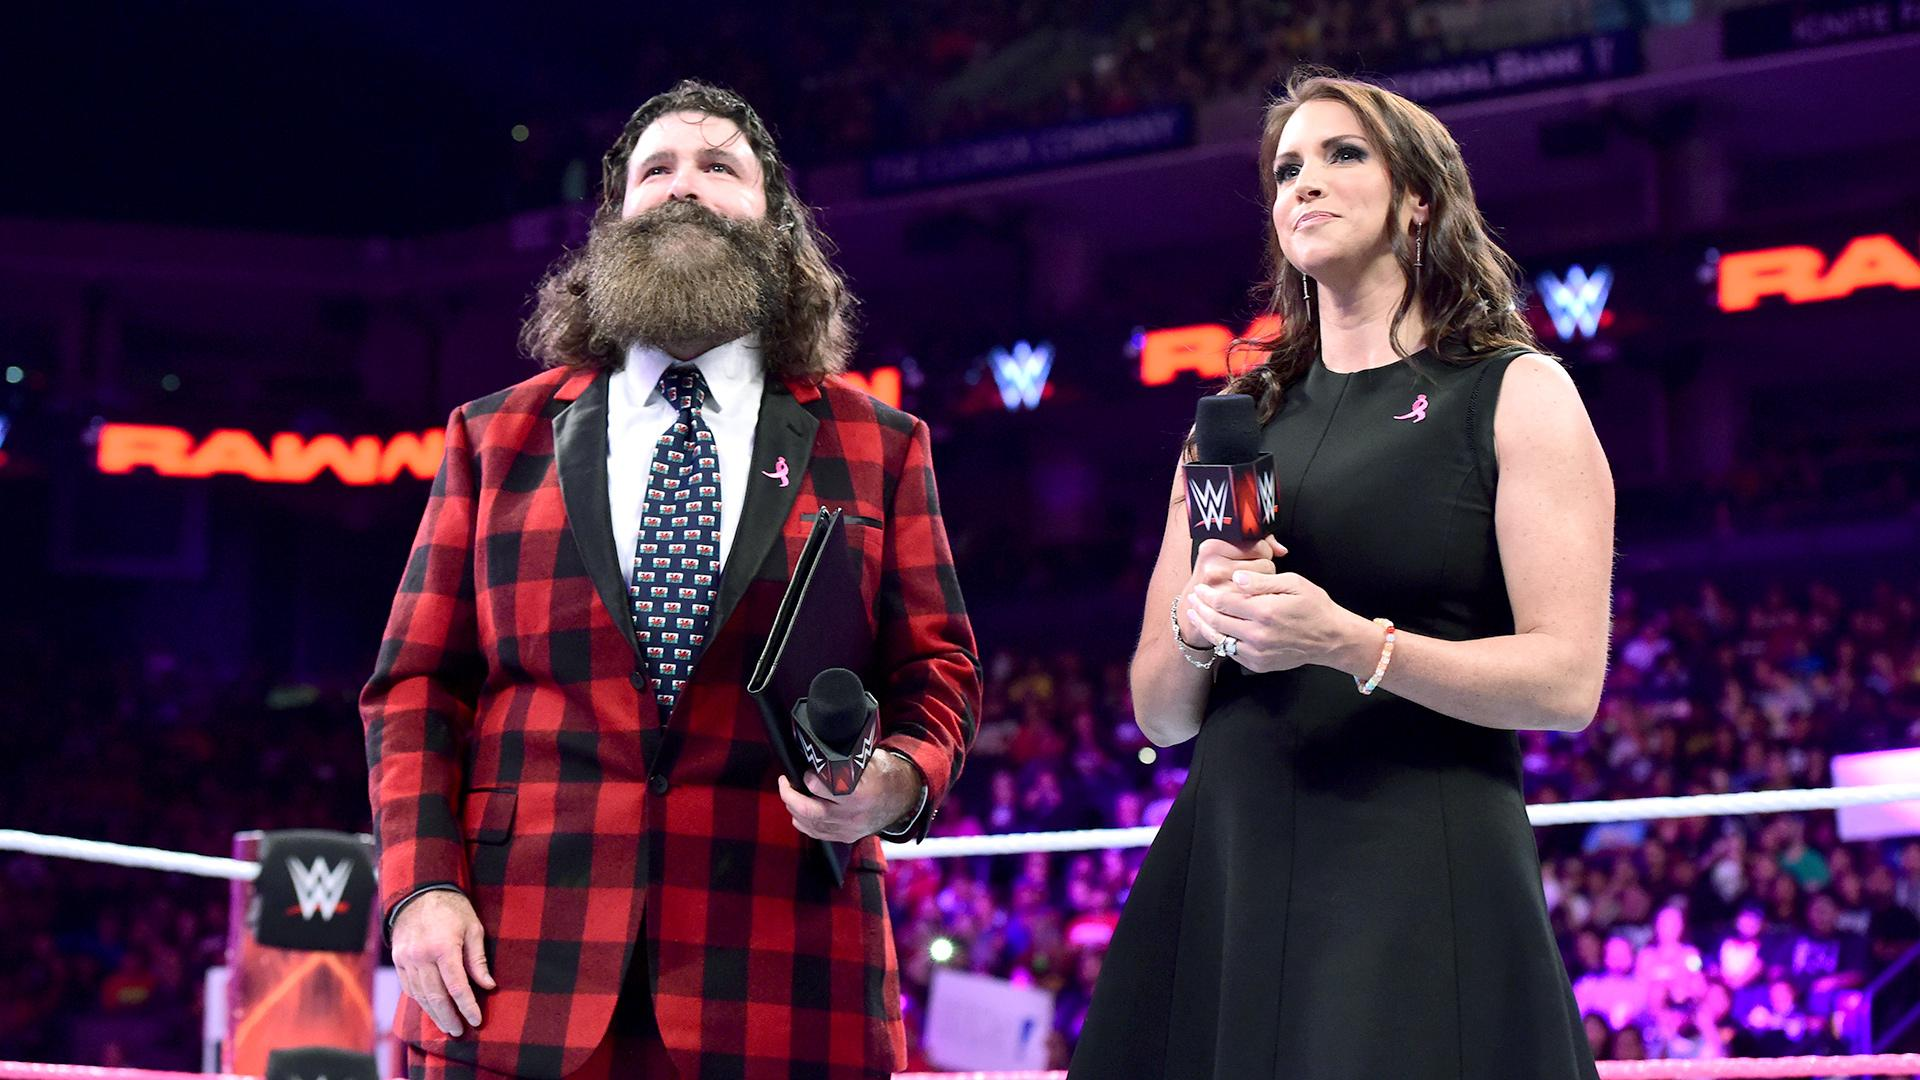 Monday Night Raw Live Stream November 14th: How to Watch